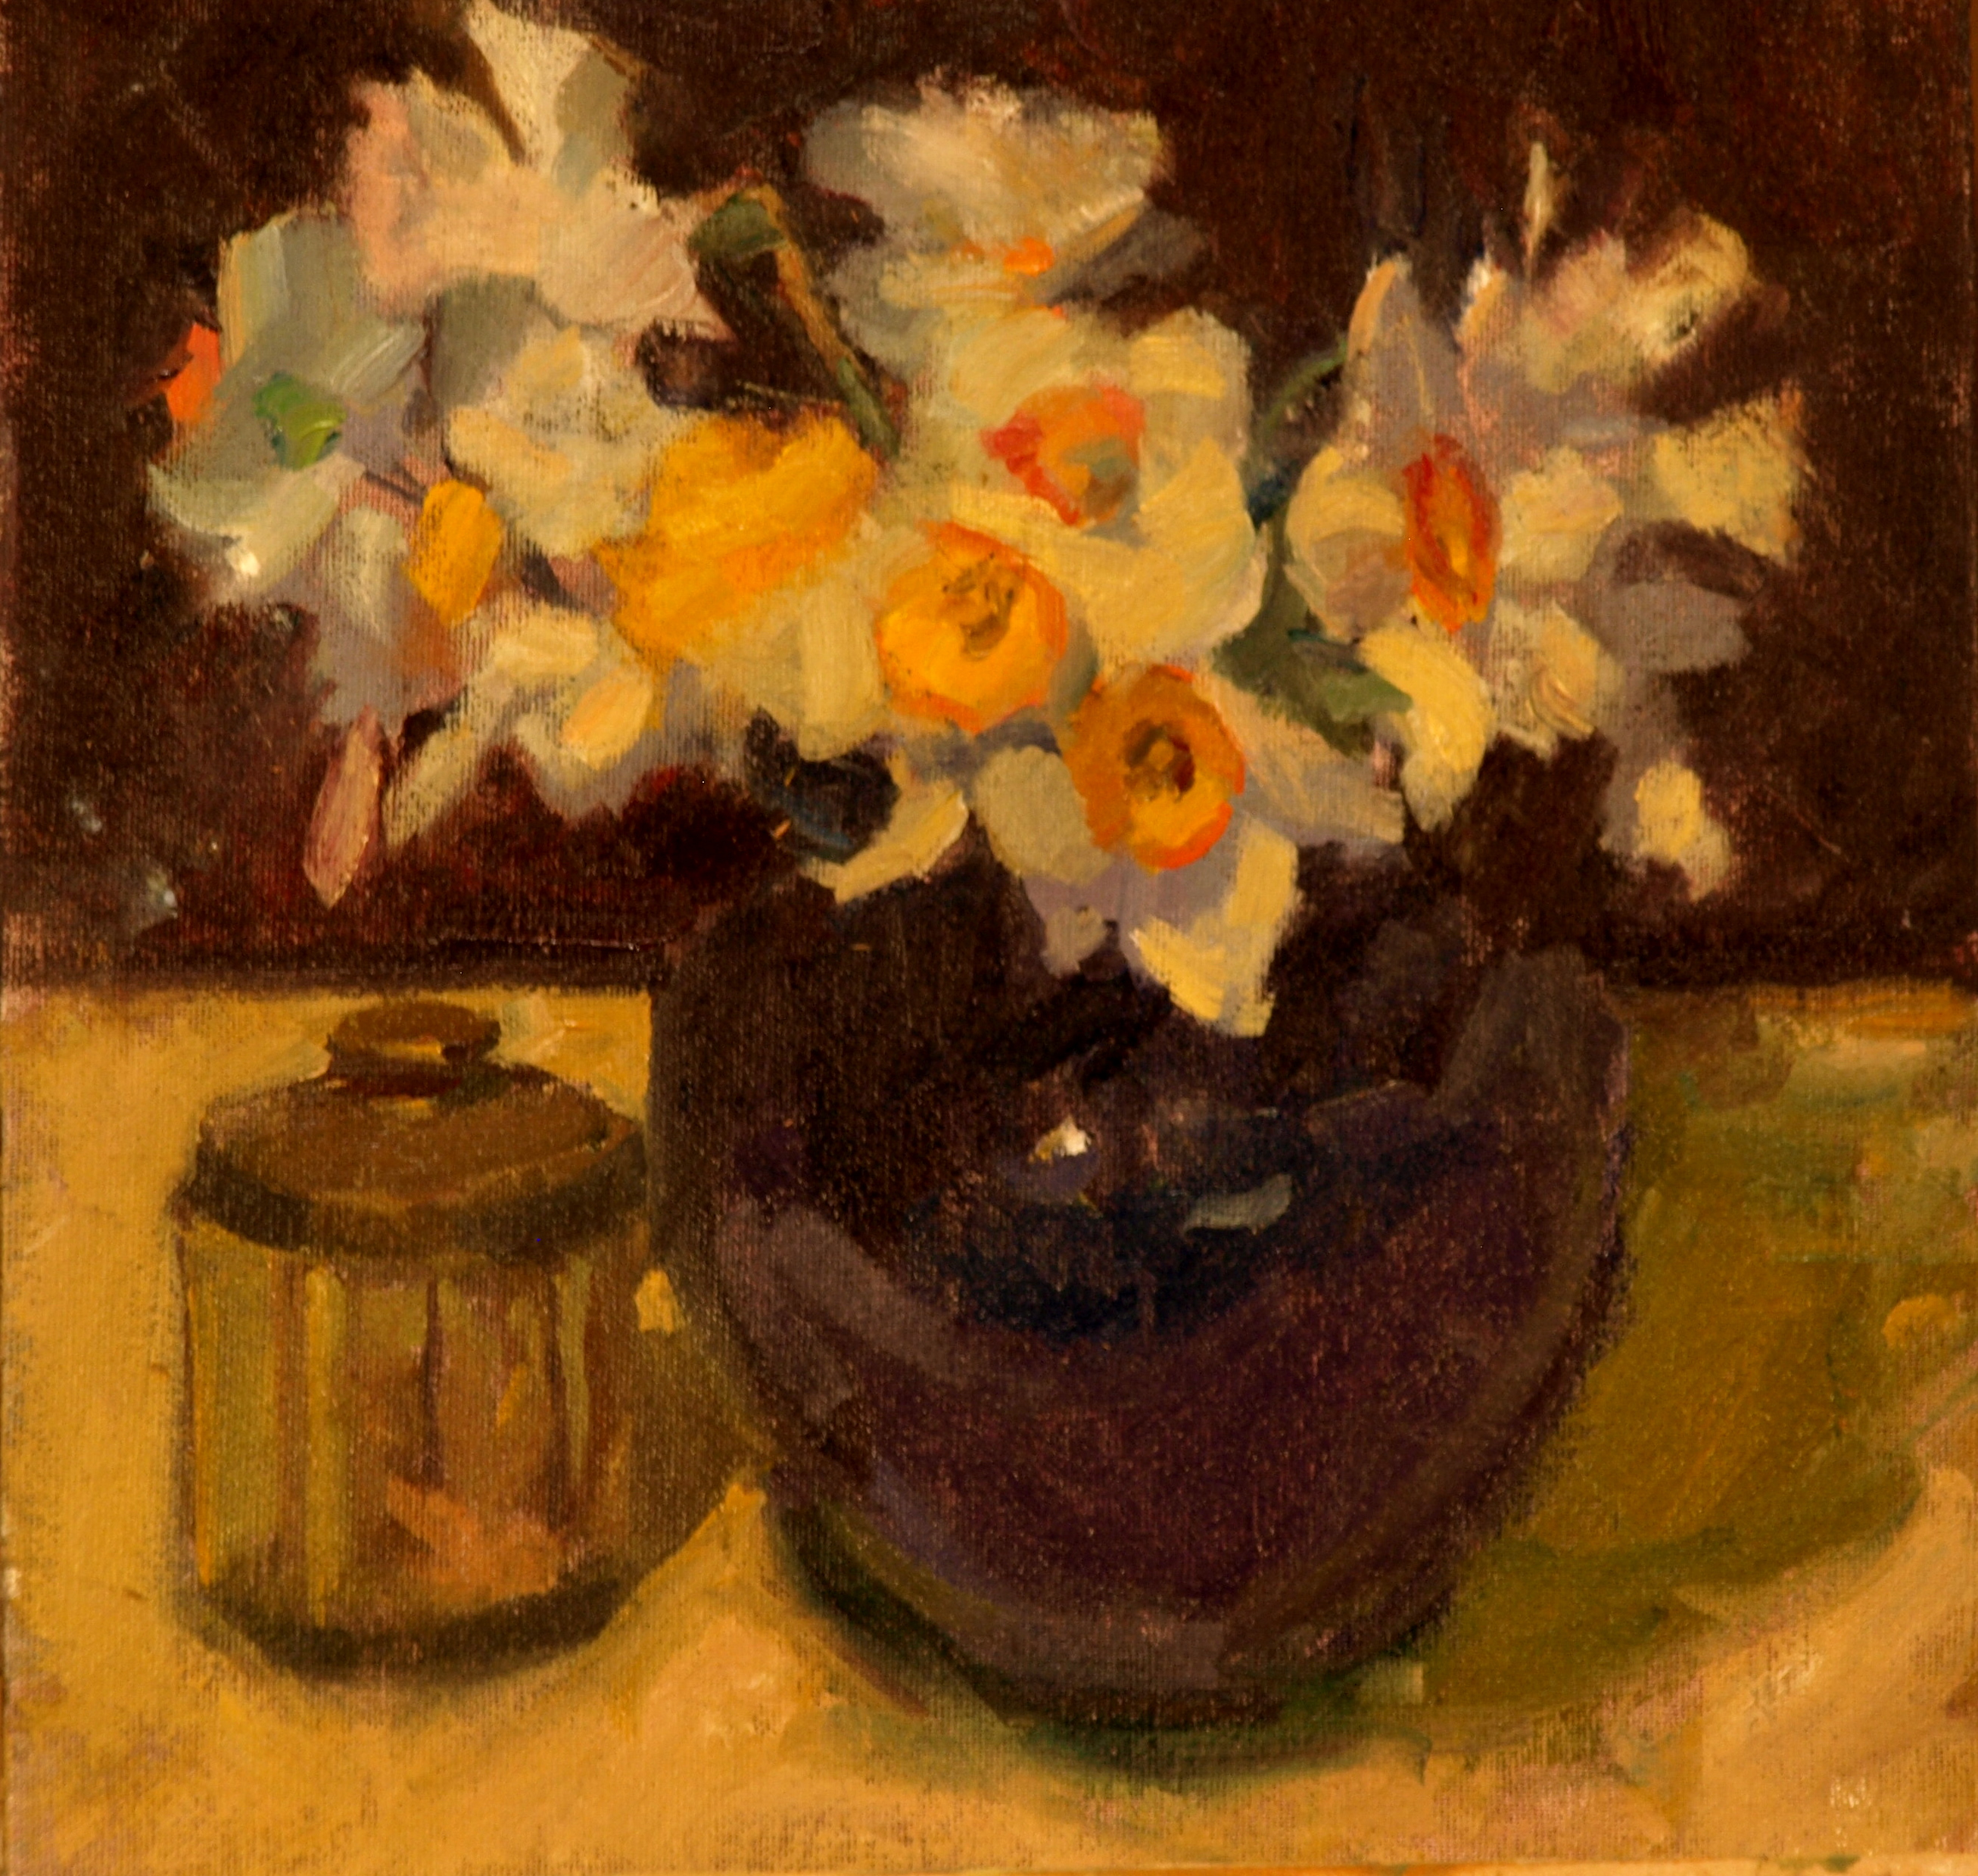 Daffodils, Oil on Canvas on Panel, 12 x 12 Inches, by Susan Grisell, $400